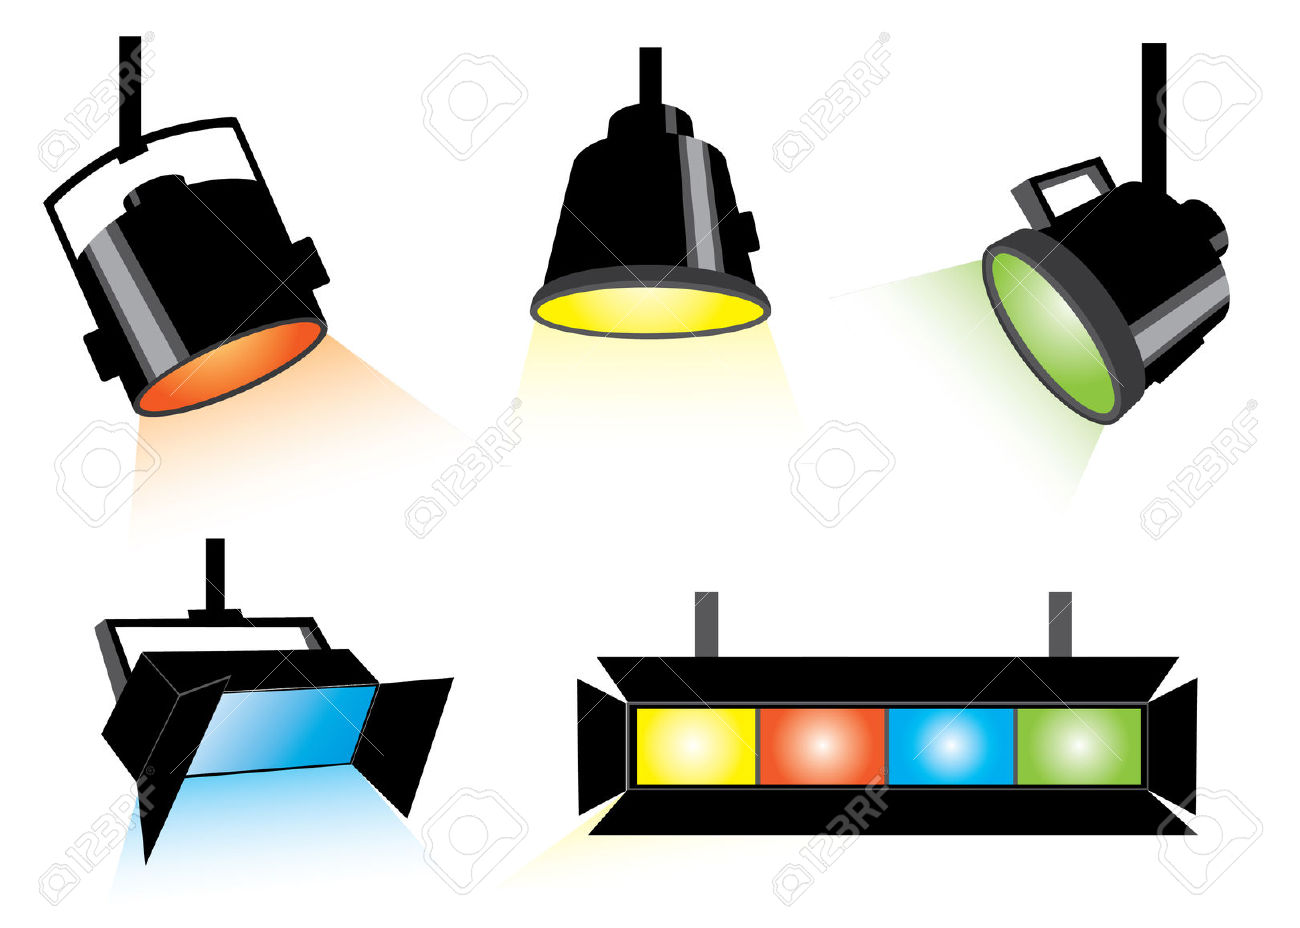 Five Colored Spotlights Royalty Free Cliparts, Vectors, And Stock.